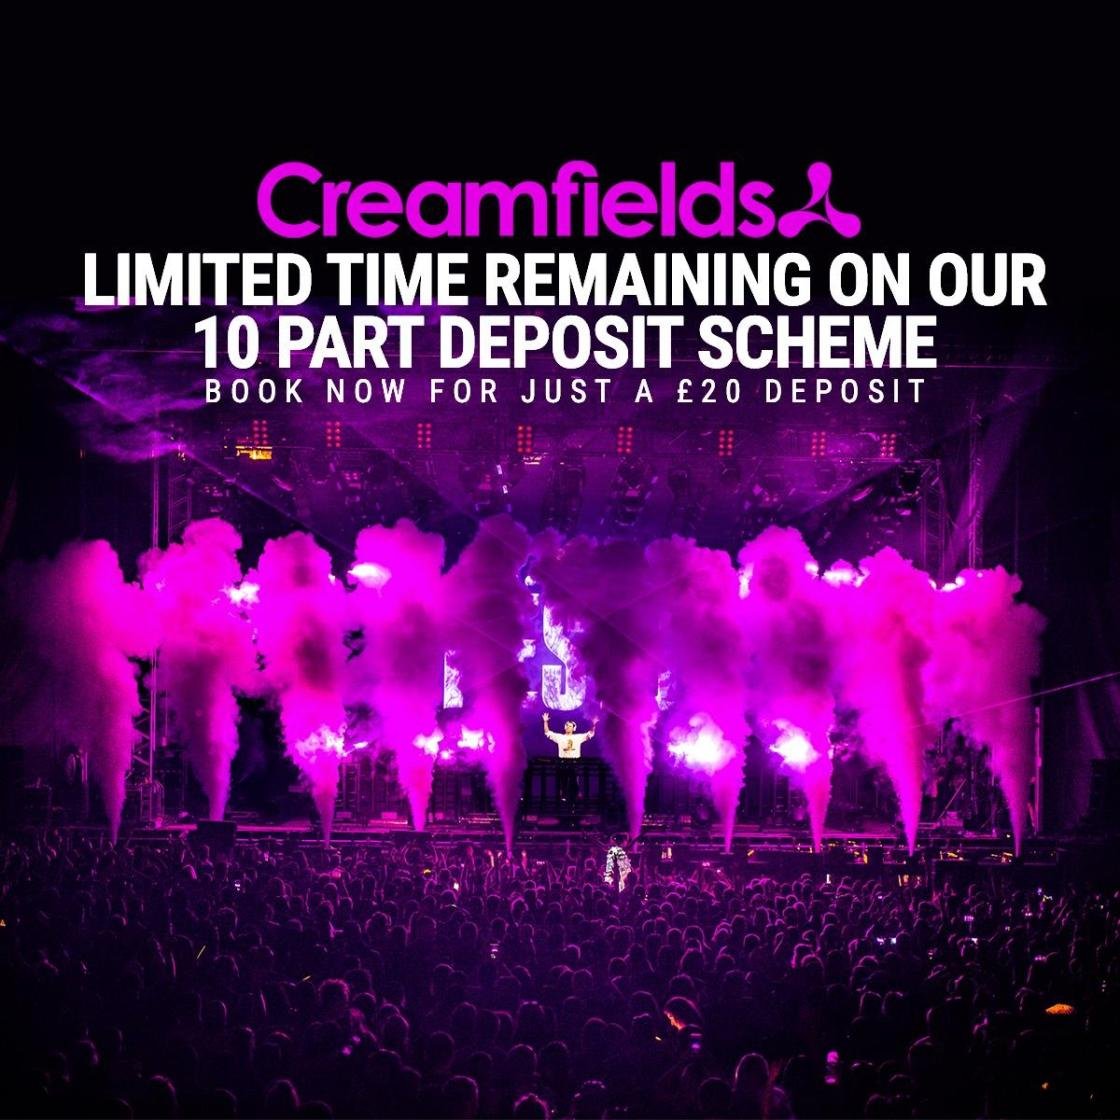 There is now limited time remaining to join our 10 Part Deposit scheme. Secure y...